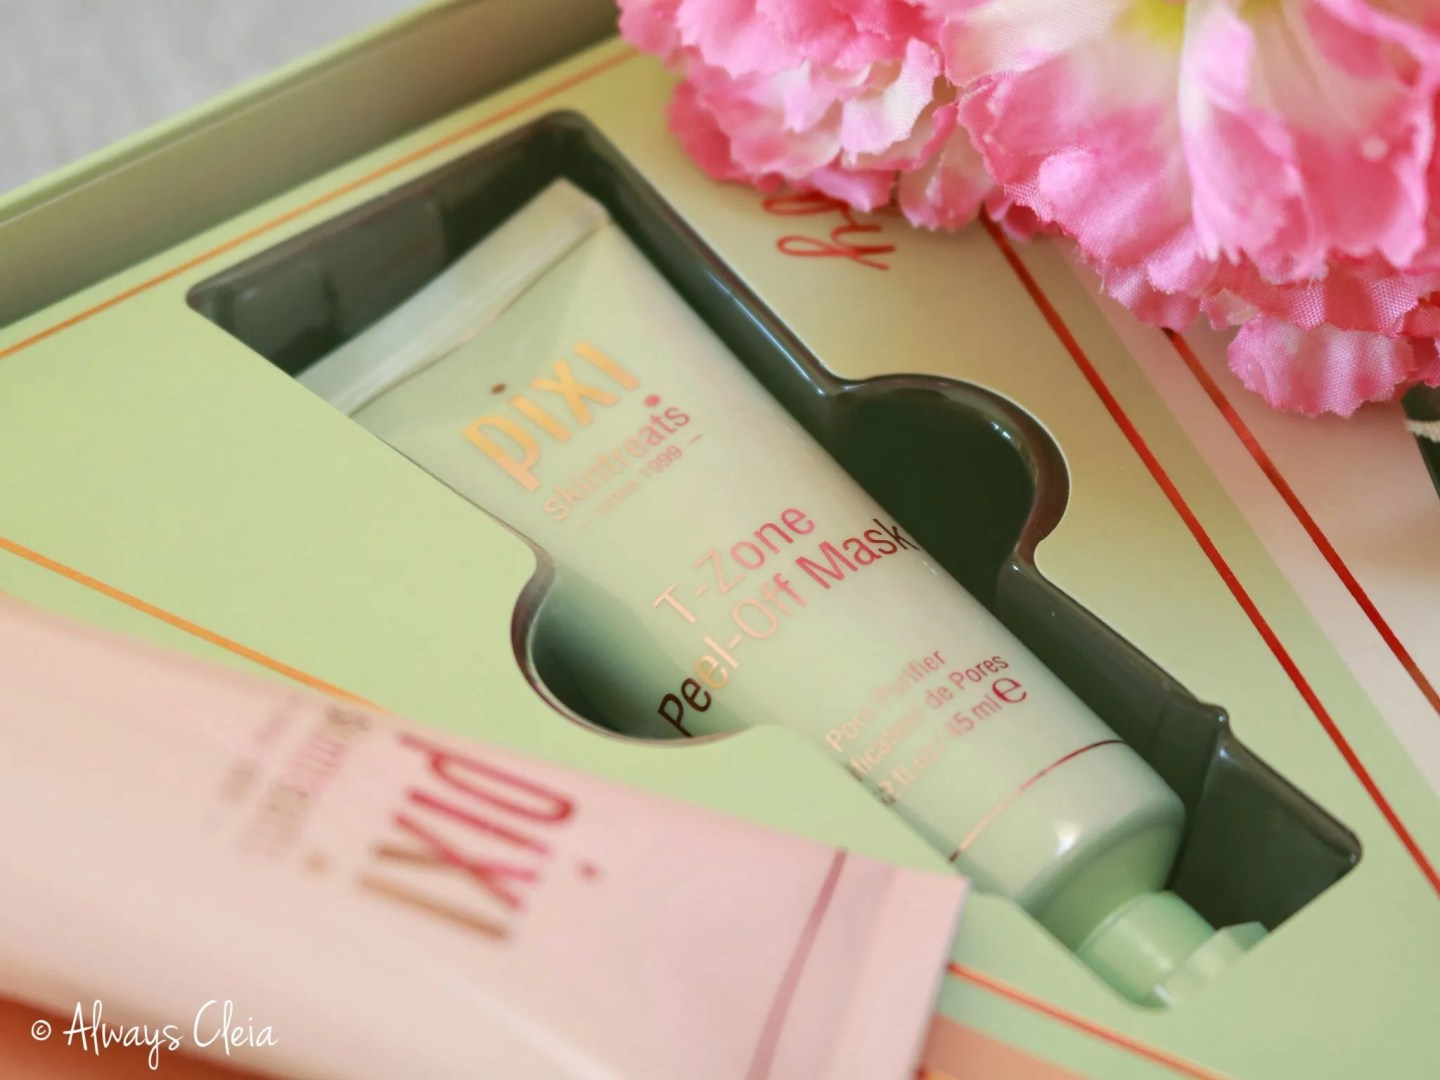 Pixi by Petra T Zone Mask Review